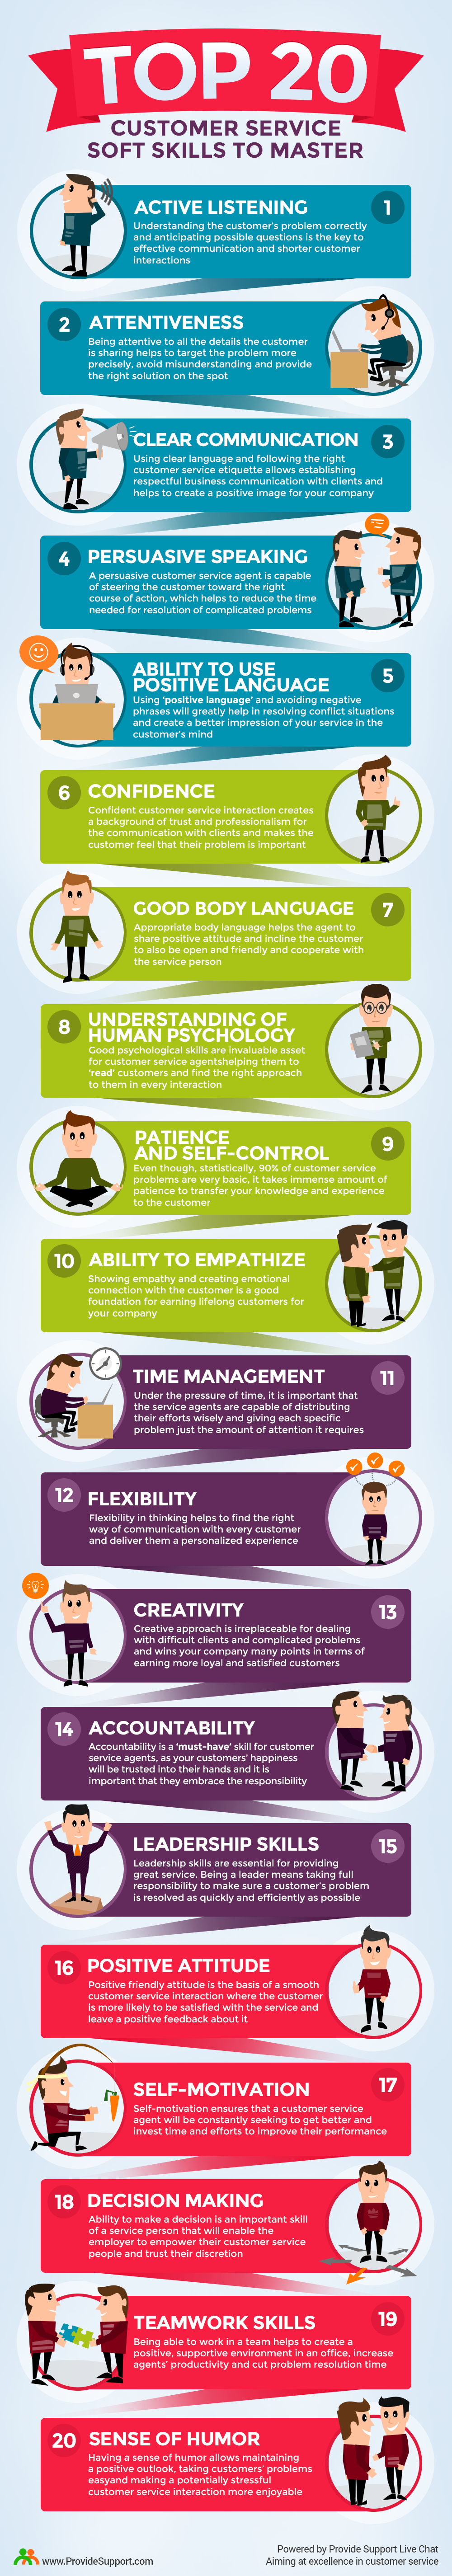 top customer service soft skills to master infographic top 20 customer service soft skills to master